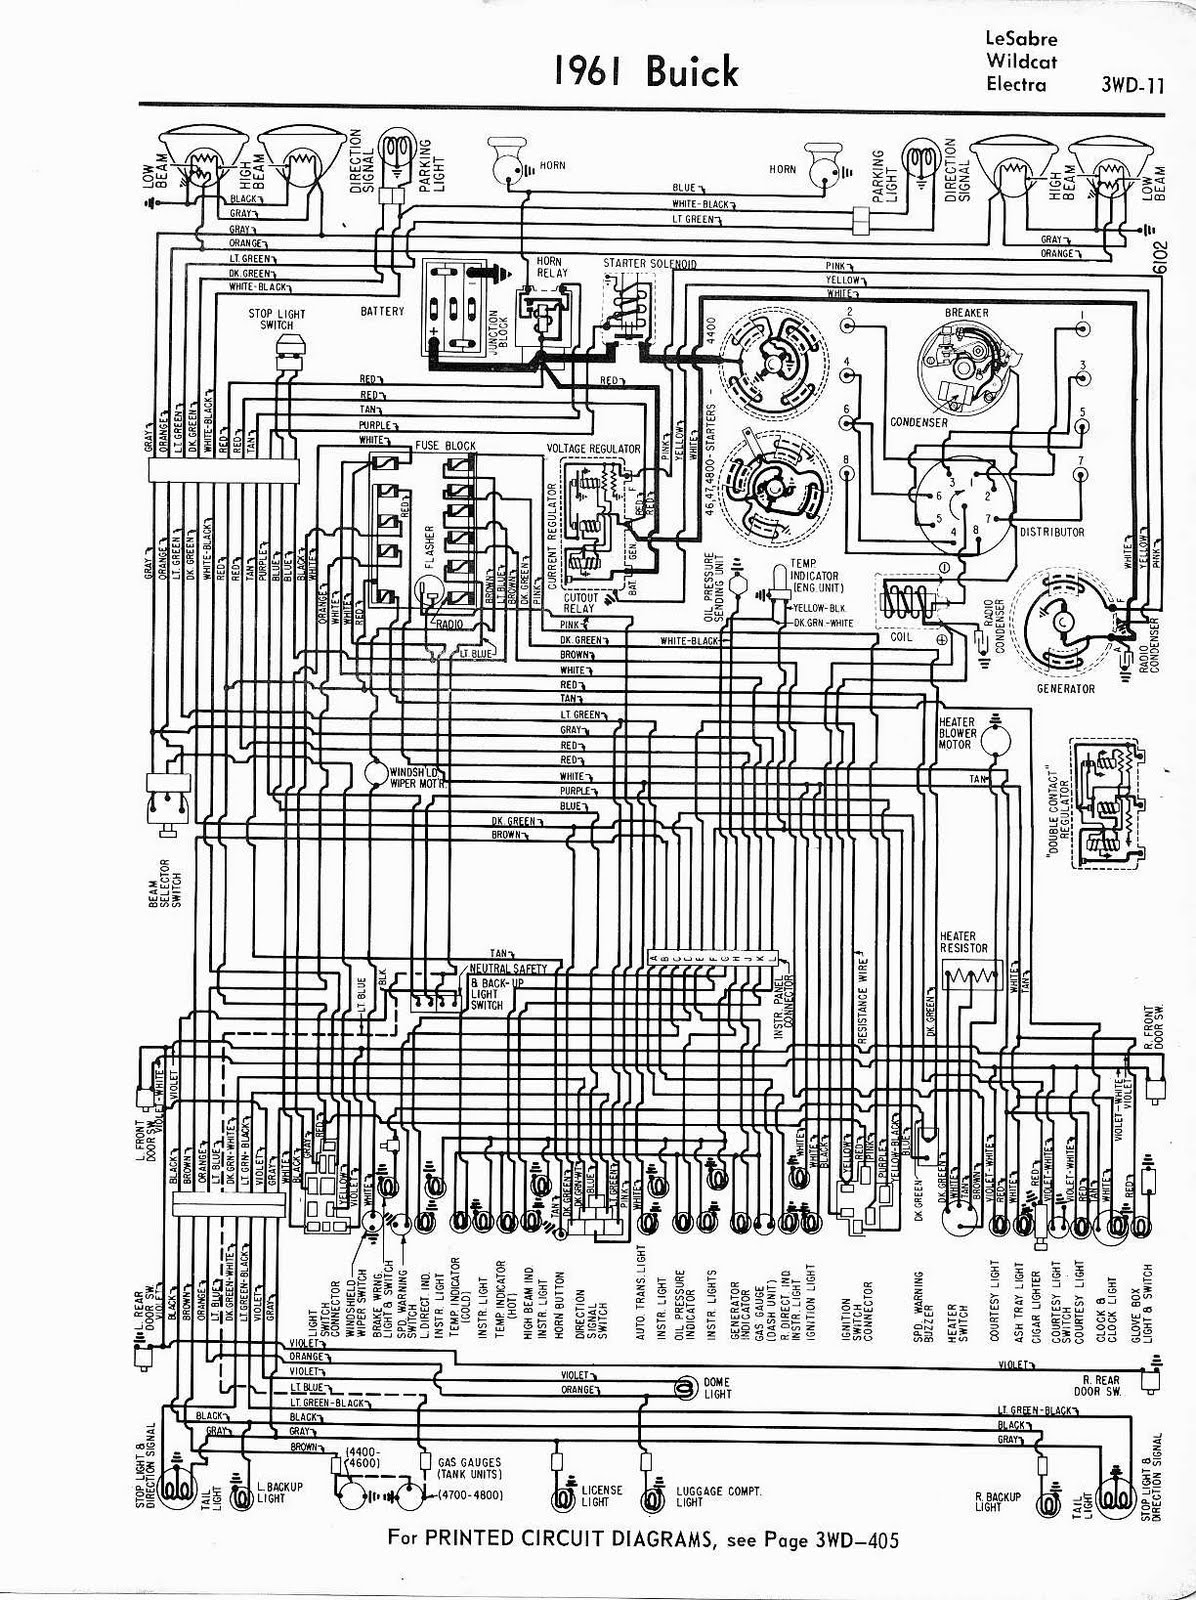 1961 Buick Lesabre Wiring Diagram Automotive Diagrams Wire 1938 Schematic Free Auto Wildcat Electra